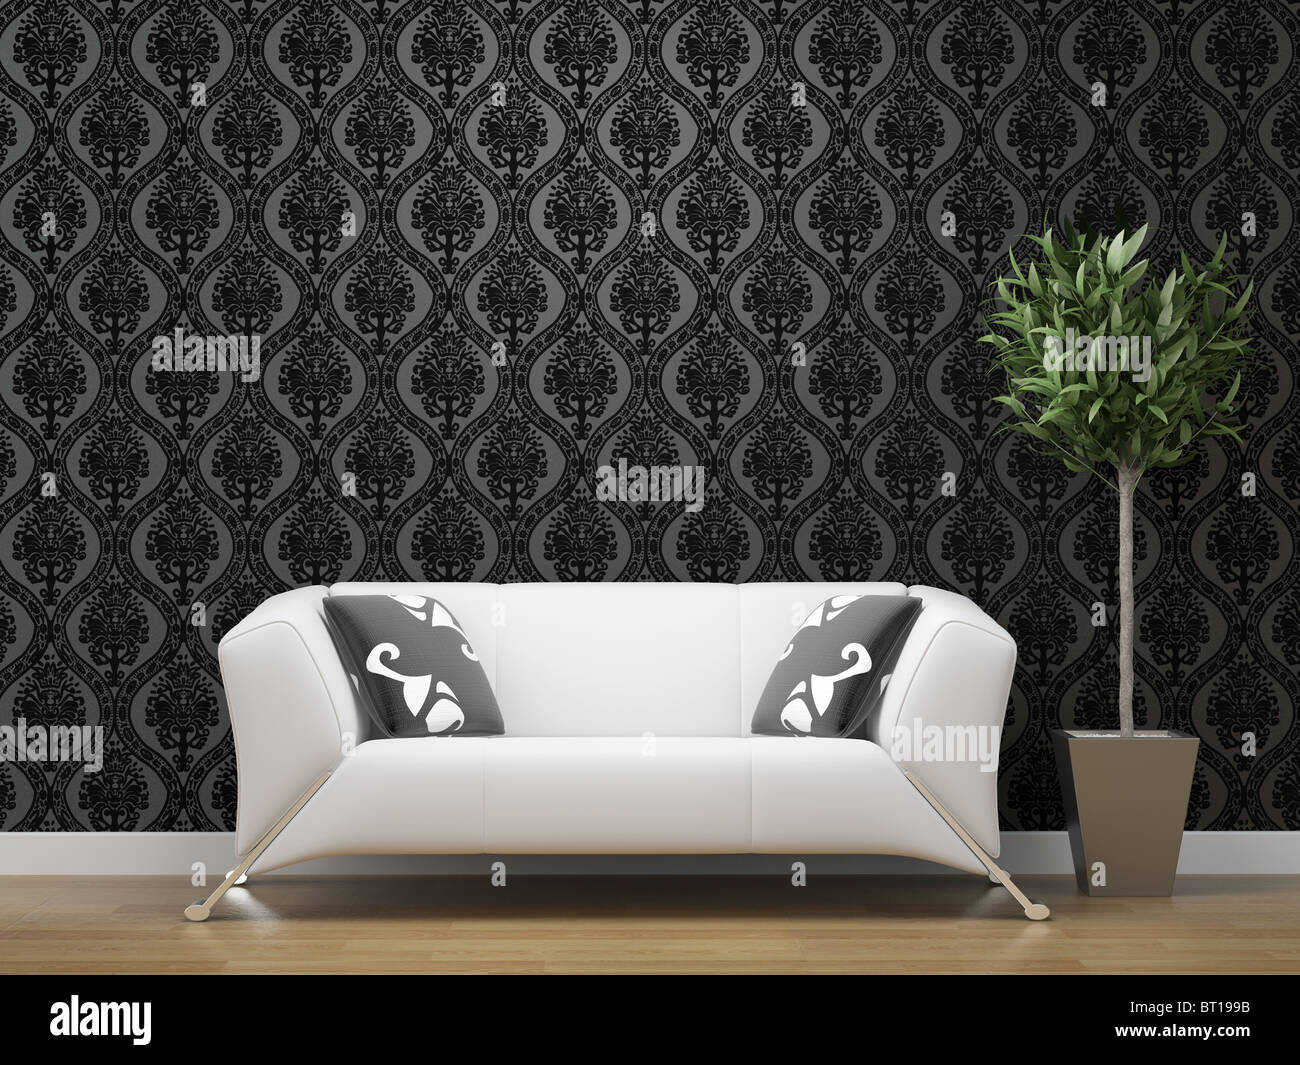 Interior design of white sofa on black and silver for Interior decoration wallpaper design